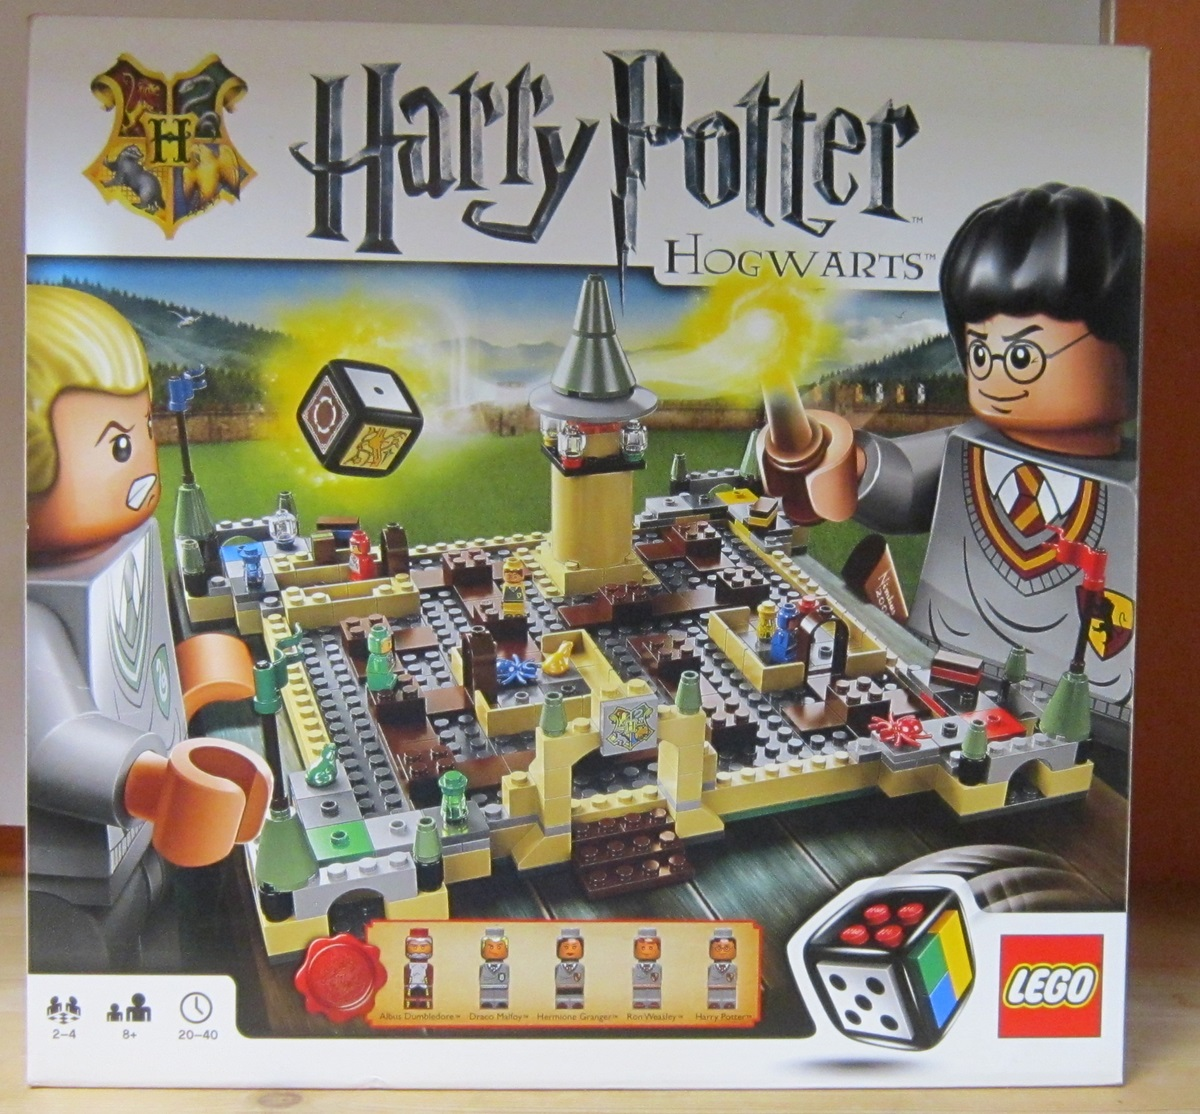 0020 Lego Harry Potter 3862